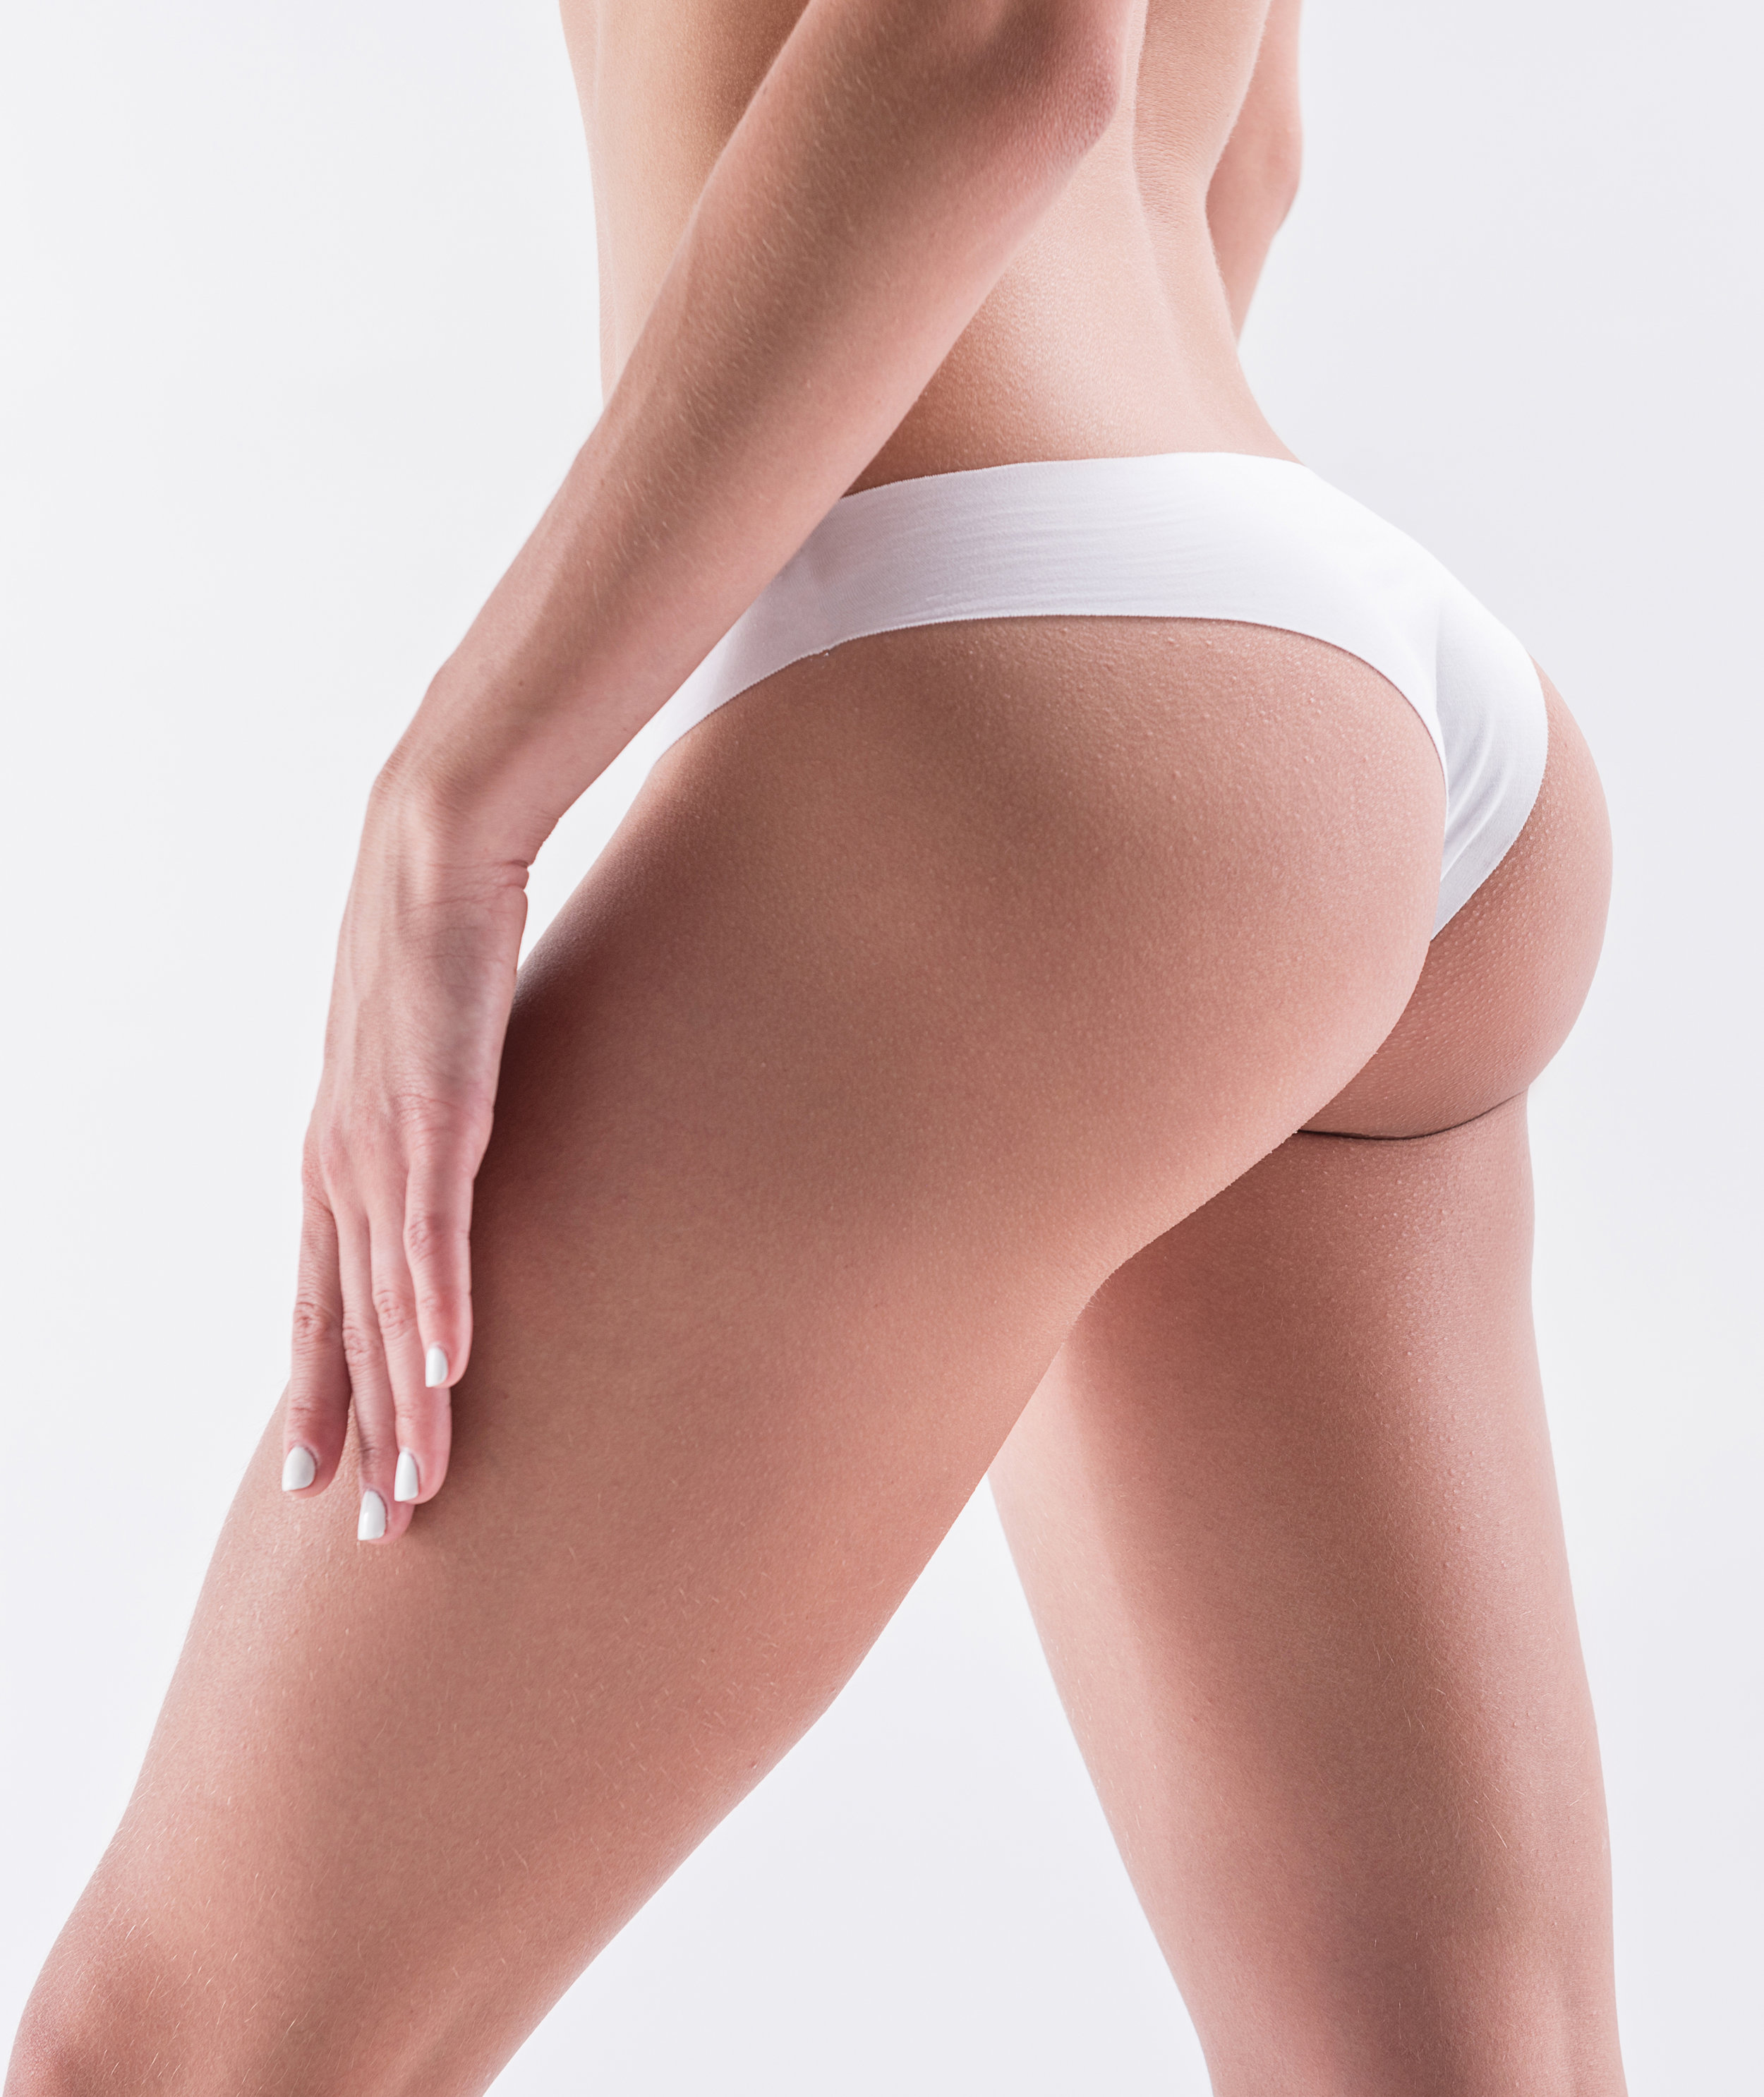 Buttock Implants -